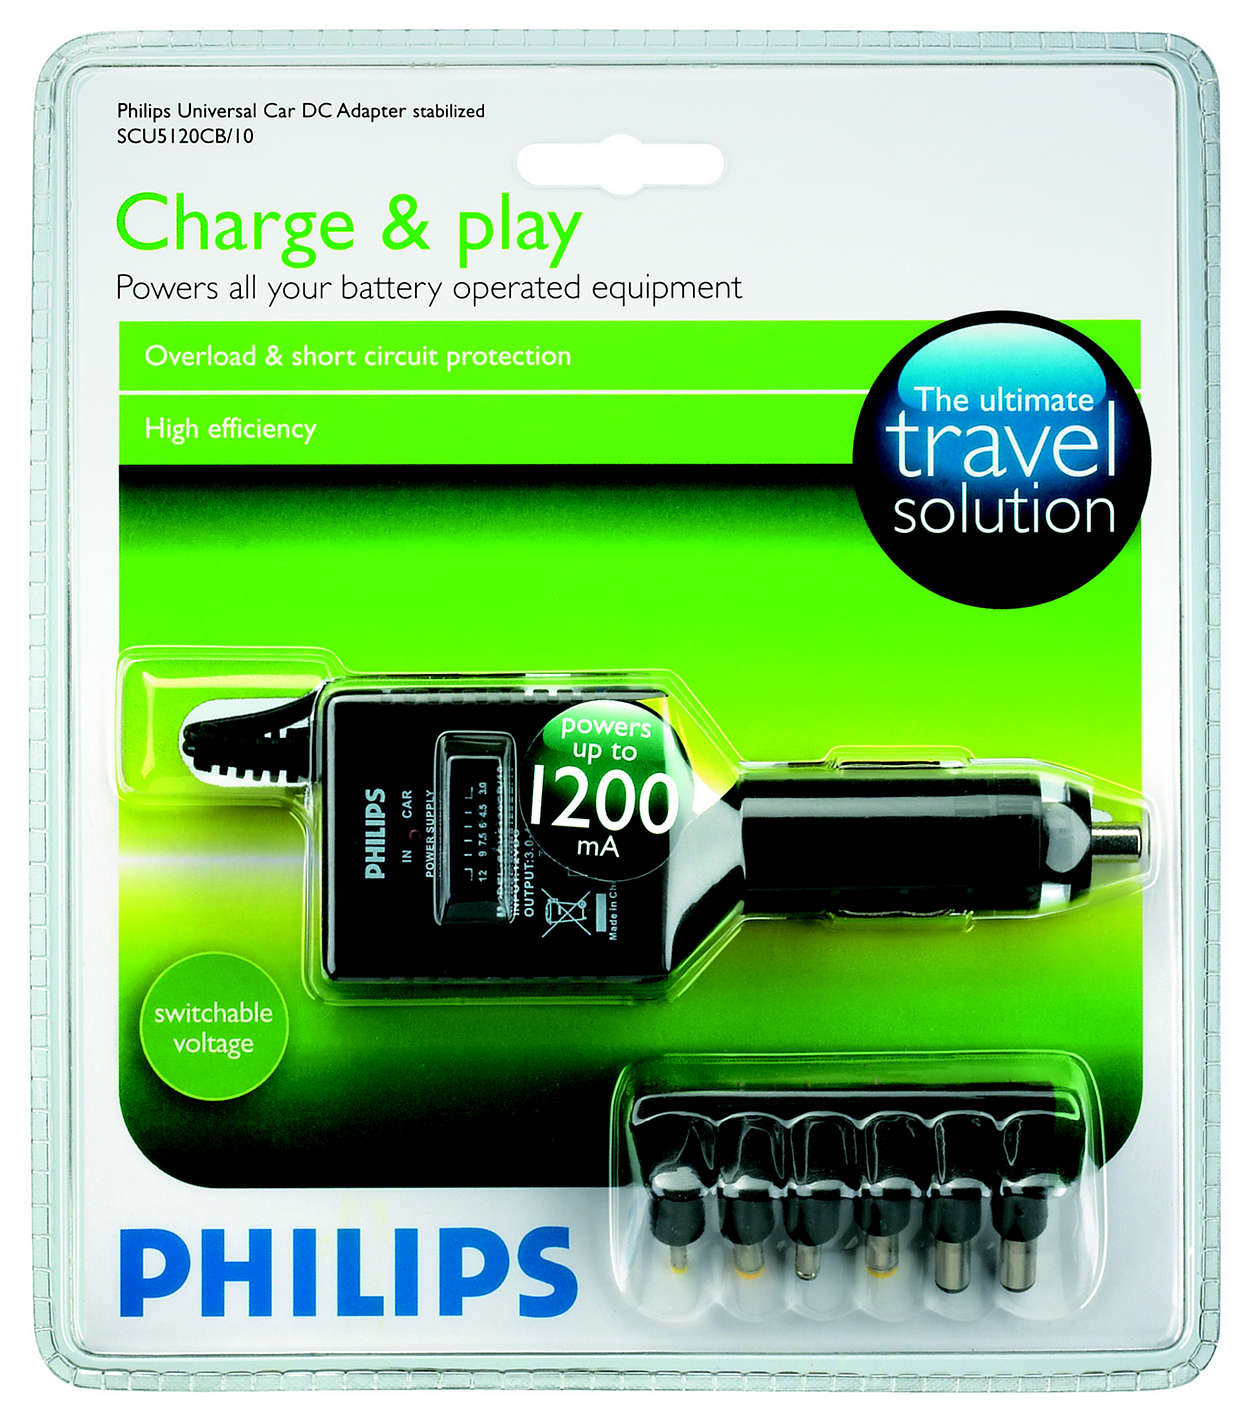 Charge & play